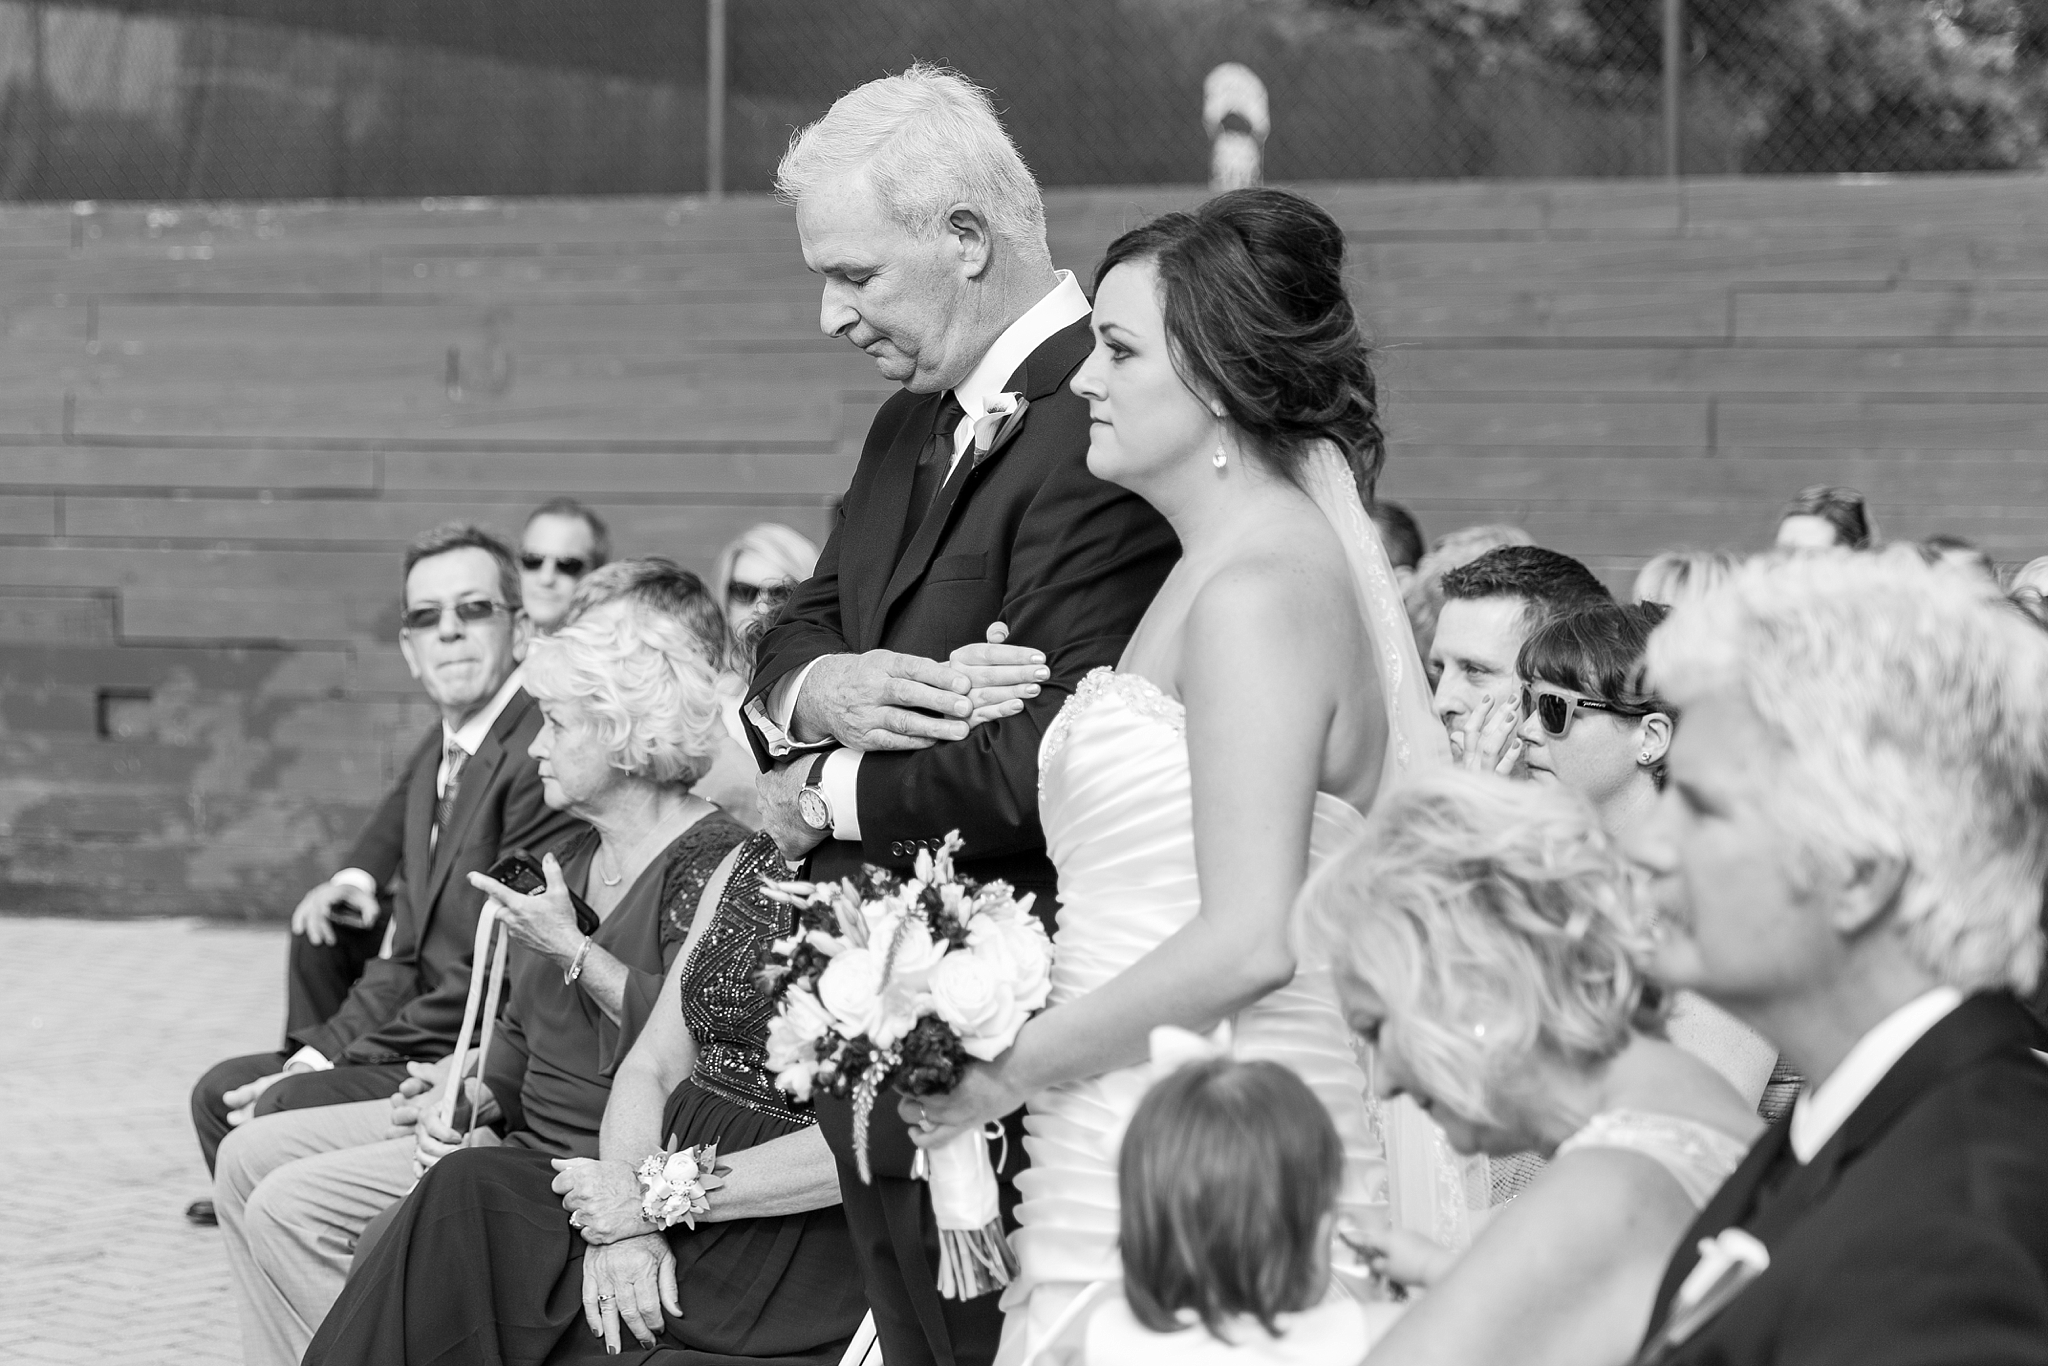 romantic-artful-candid-wedding-photos-in-detroit-lansing-ann-arbor-northern-michigan-and-chicago-by-courtney-carolyn-photography_0046.jpg